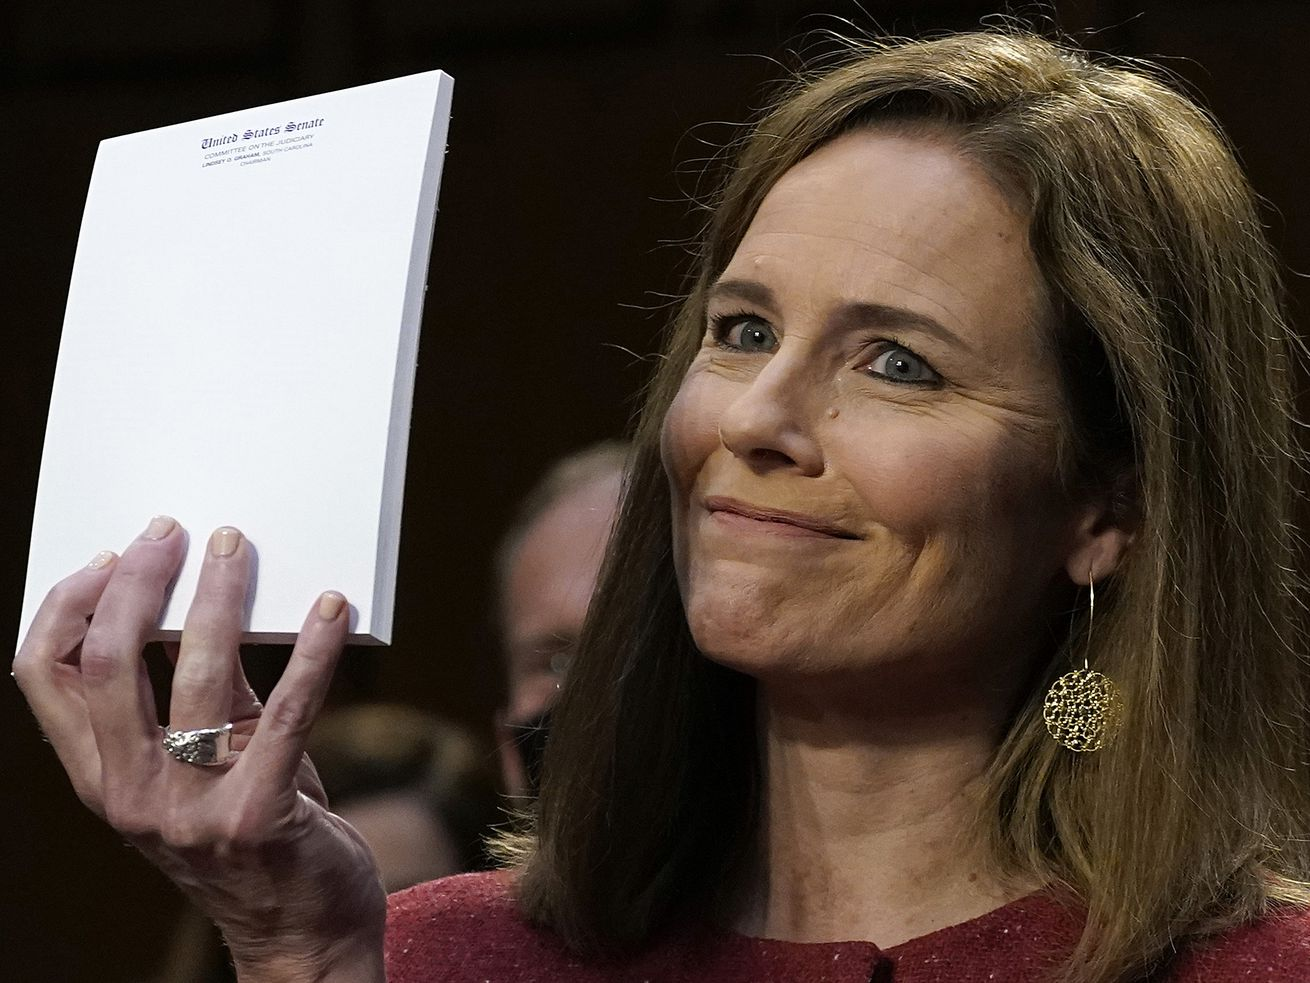 In our opinion: Barrett doesn't need notes to be principled. That's hard for Congress to understand